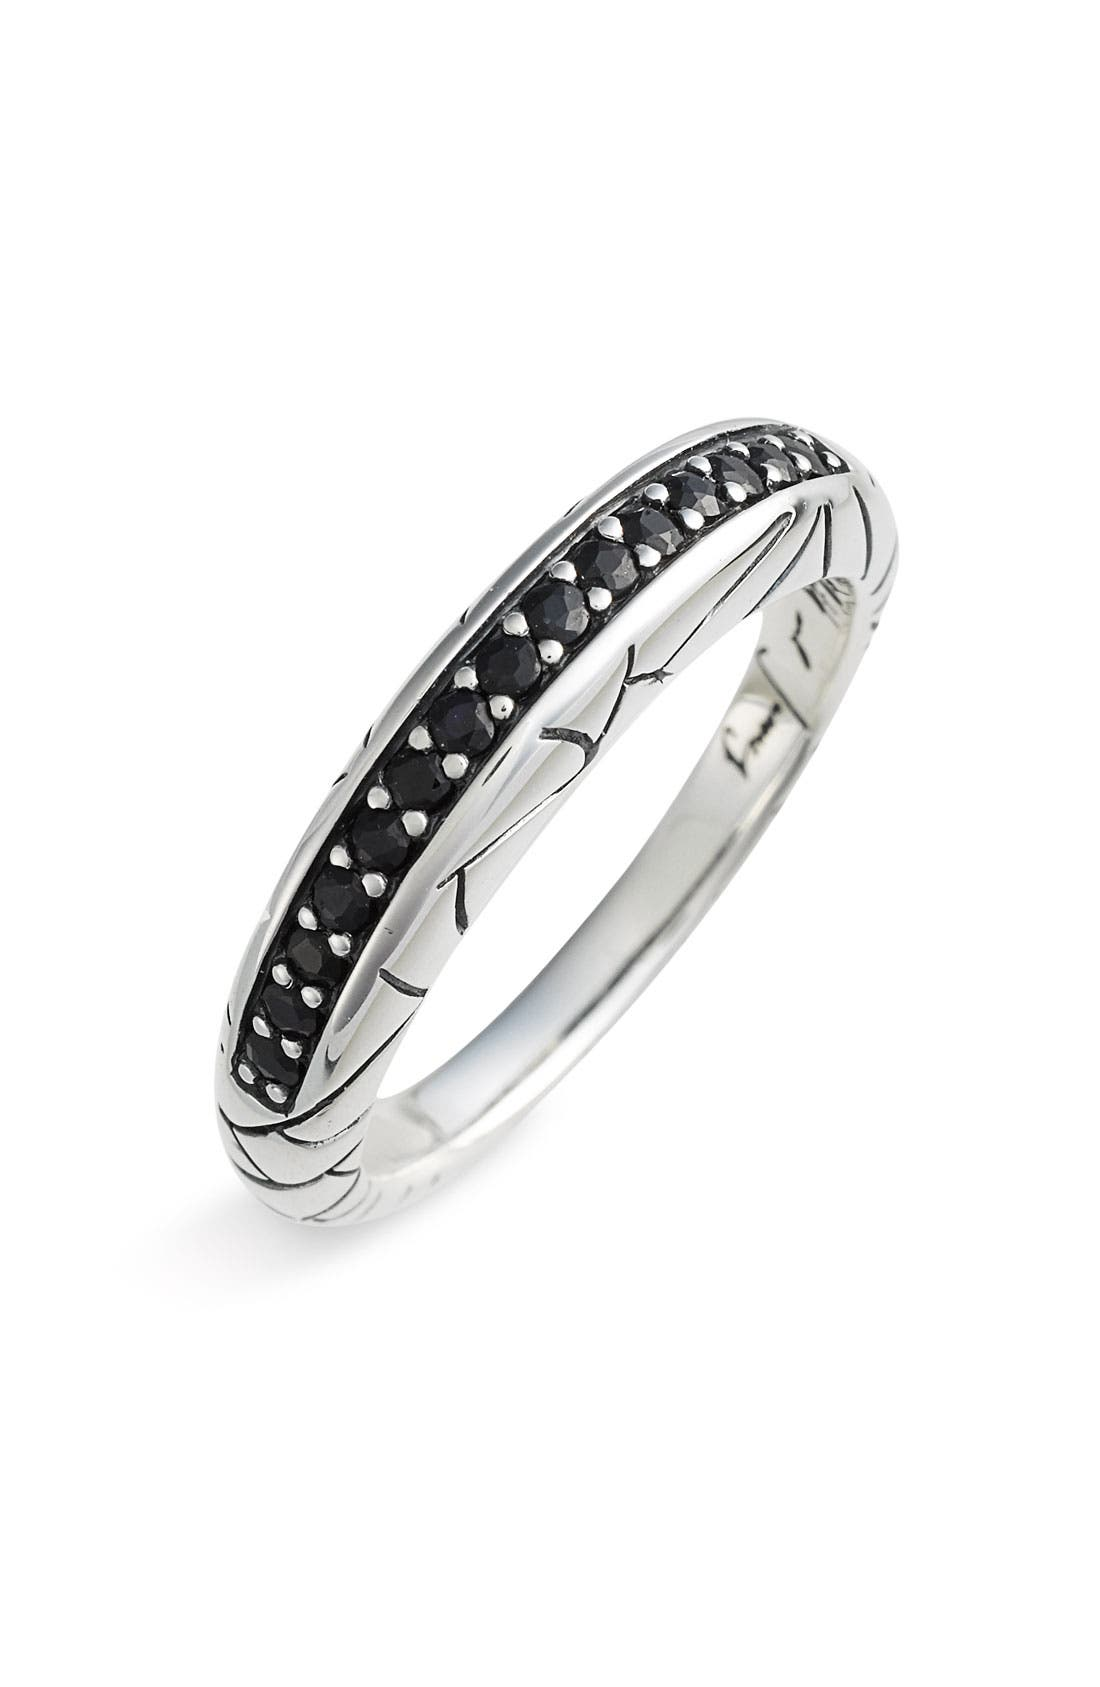 Main Image - Elizabeth and James 'Puck's Garden' Stackable Ring